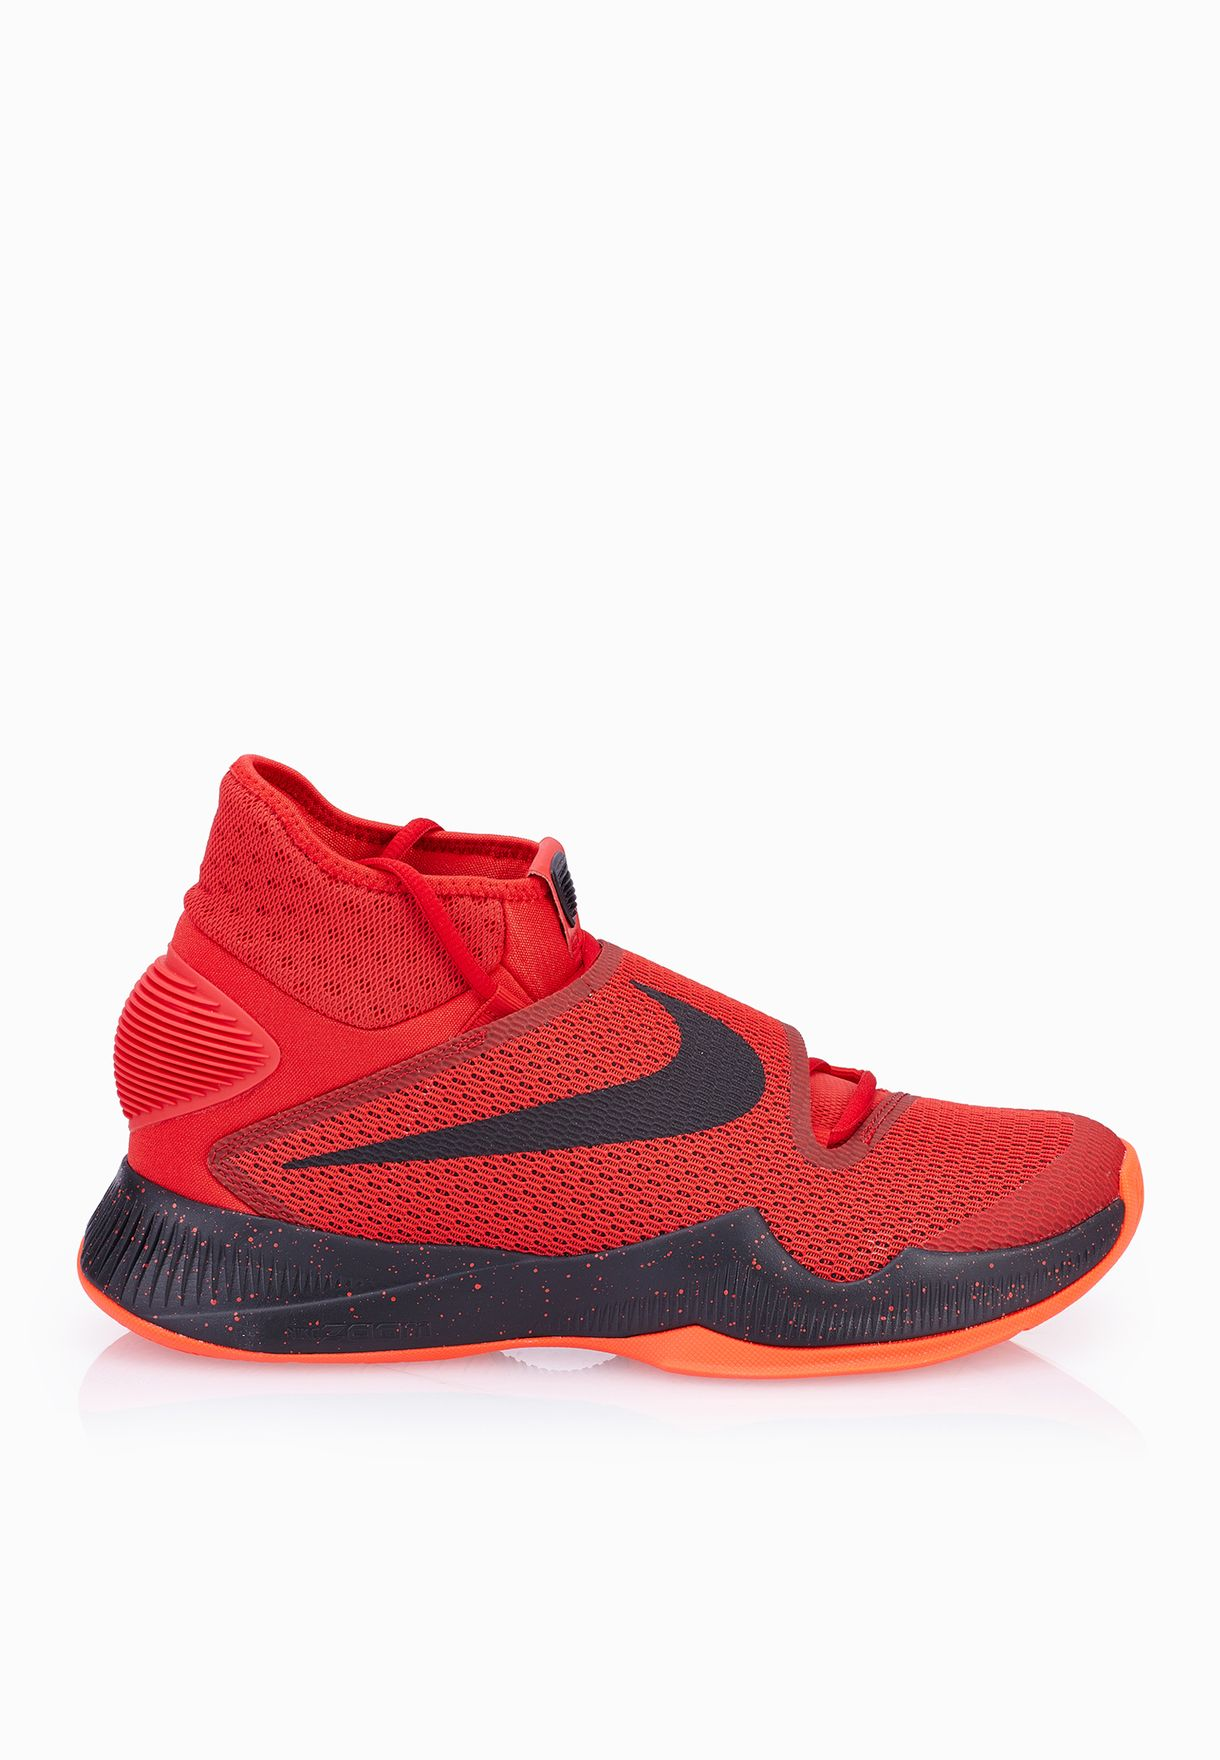 5b6fd49ed6a0 Shop Nike red Zoom Hyperrev 2016 820224-660 for Men in UAE ...